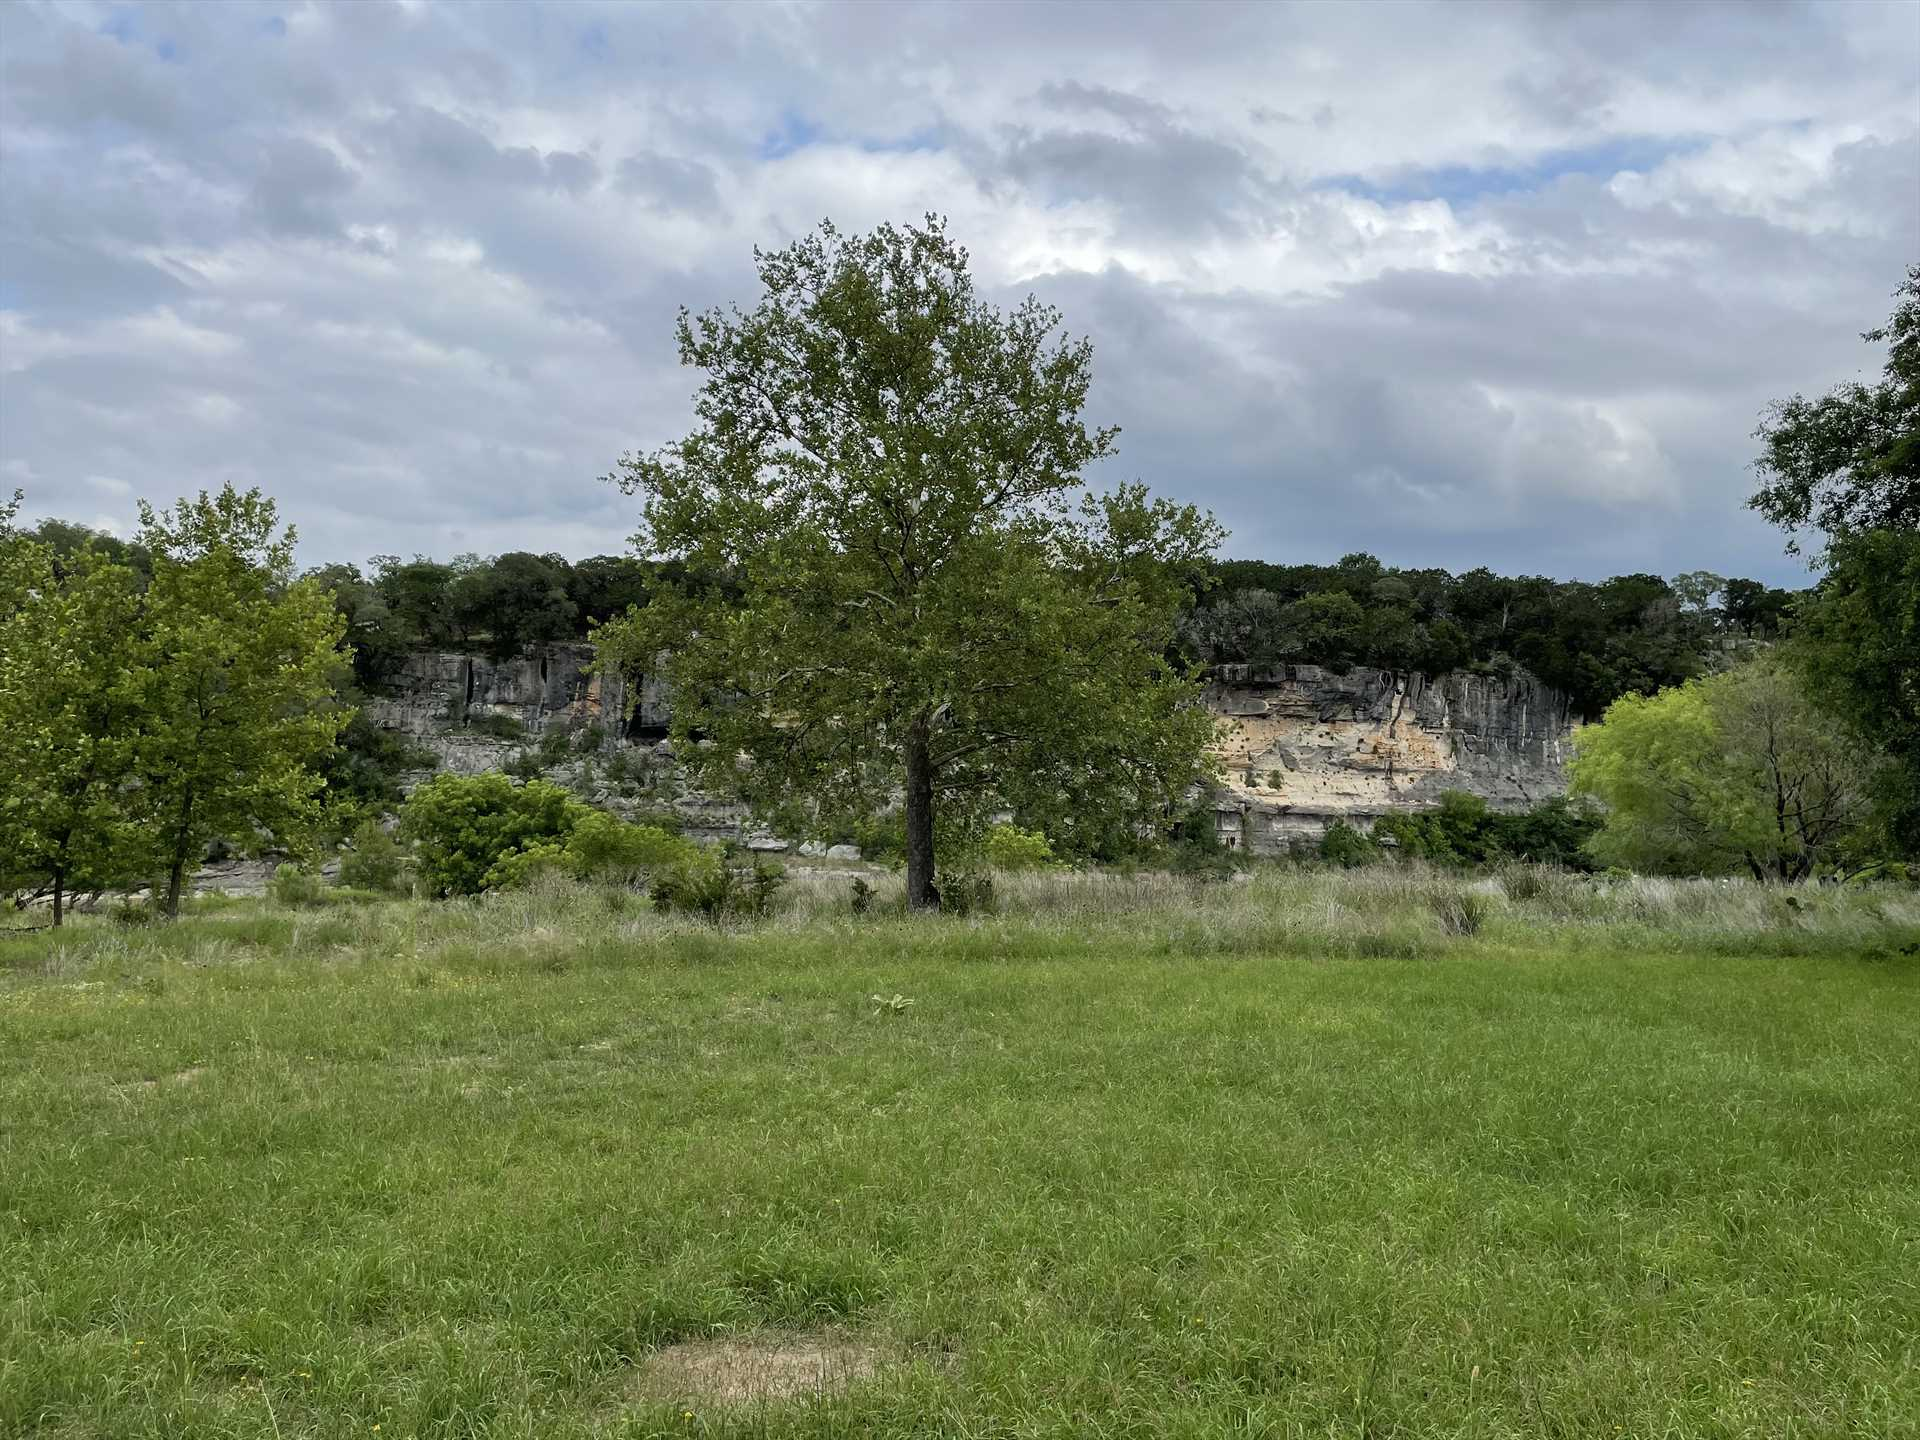 Your section of the Medina is bracketed on the other side by a picturesque limestone bluff.